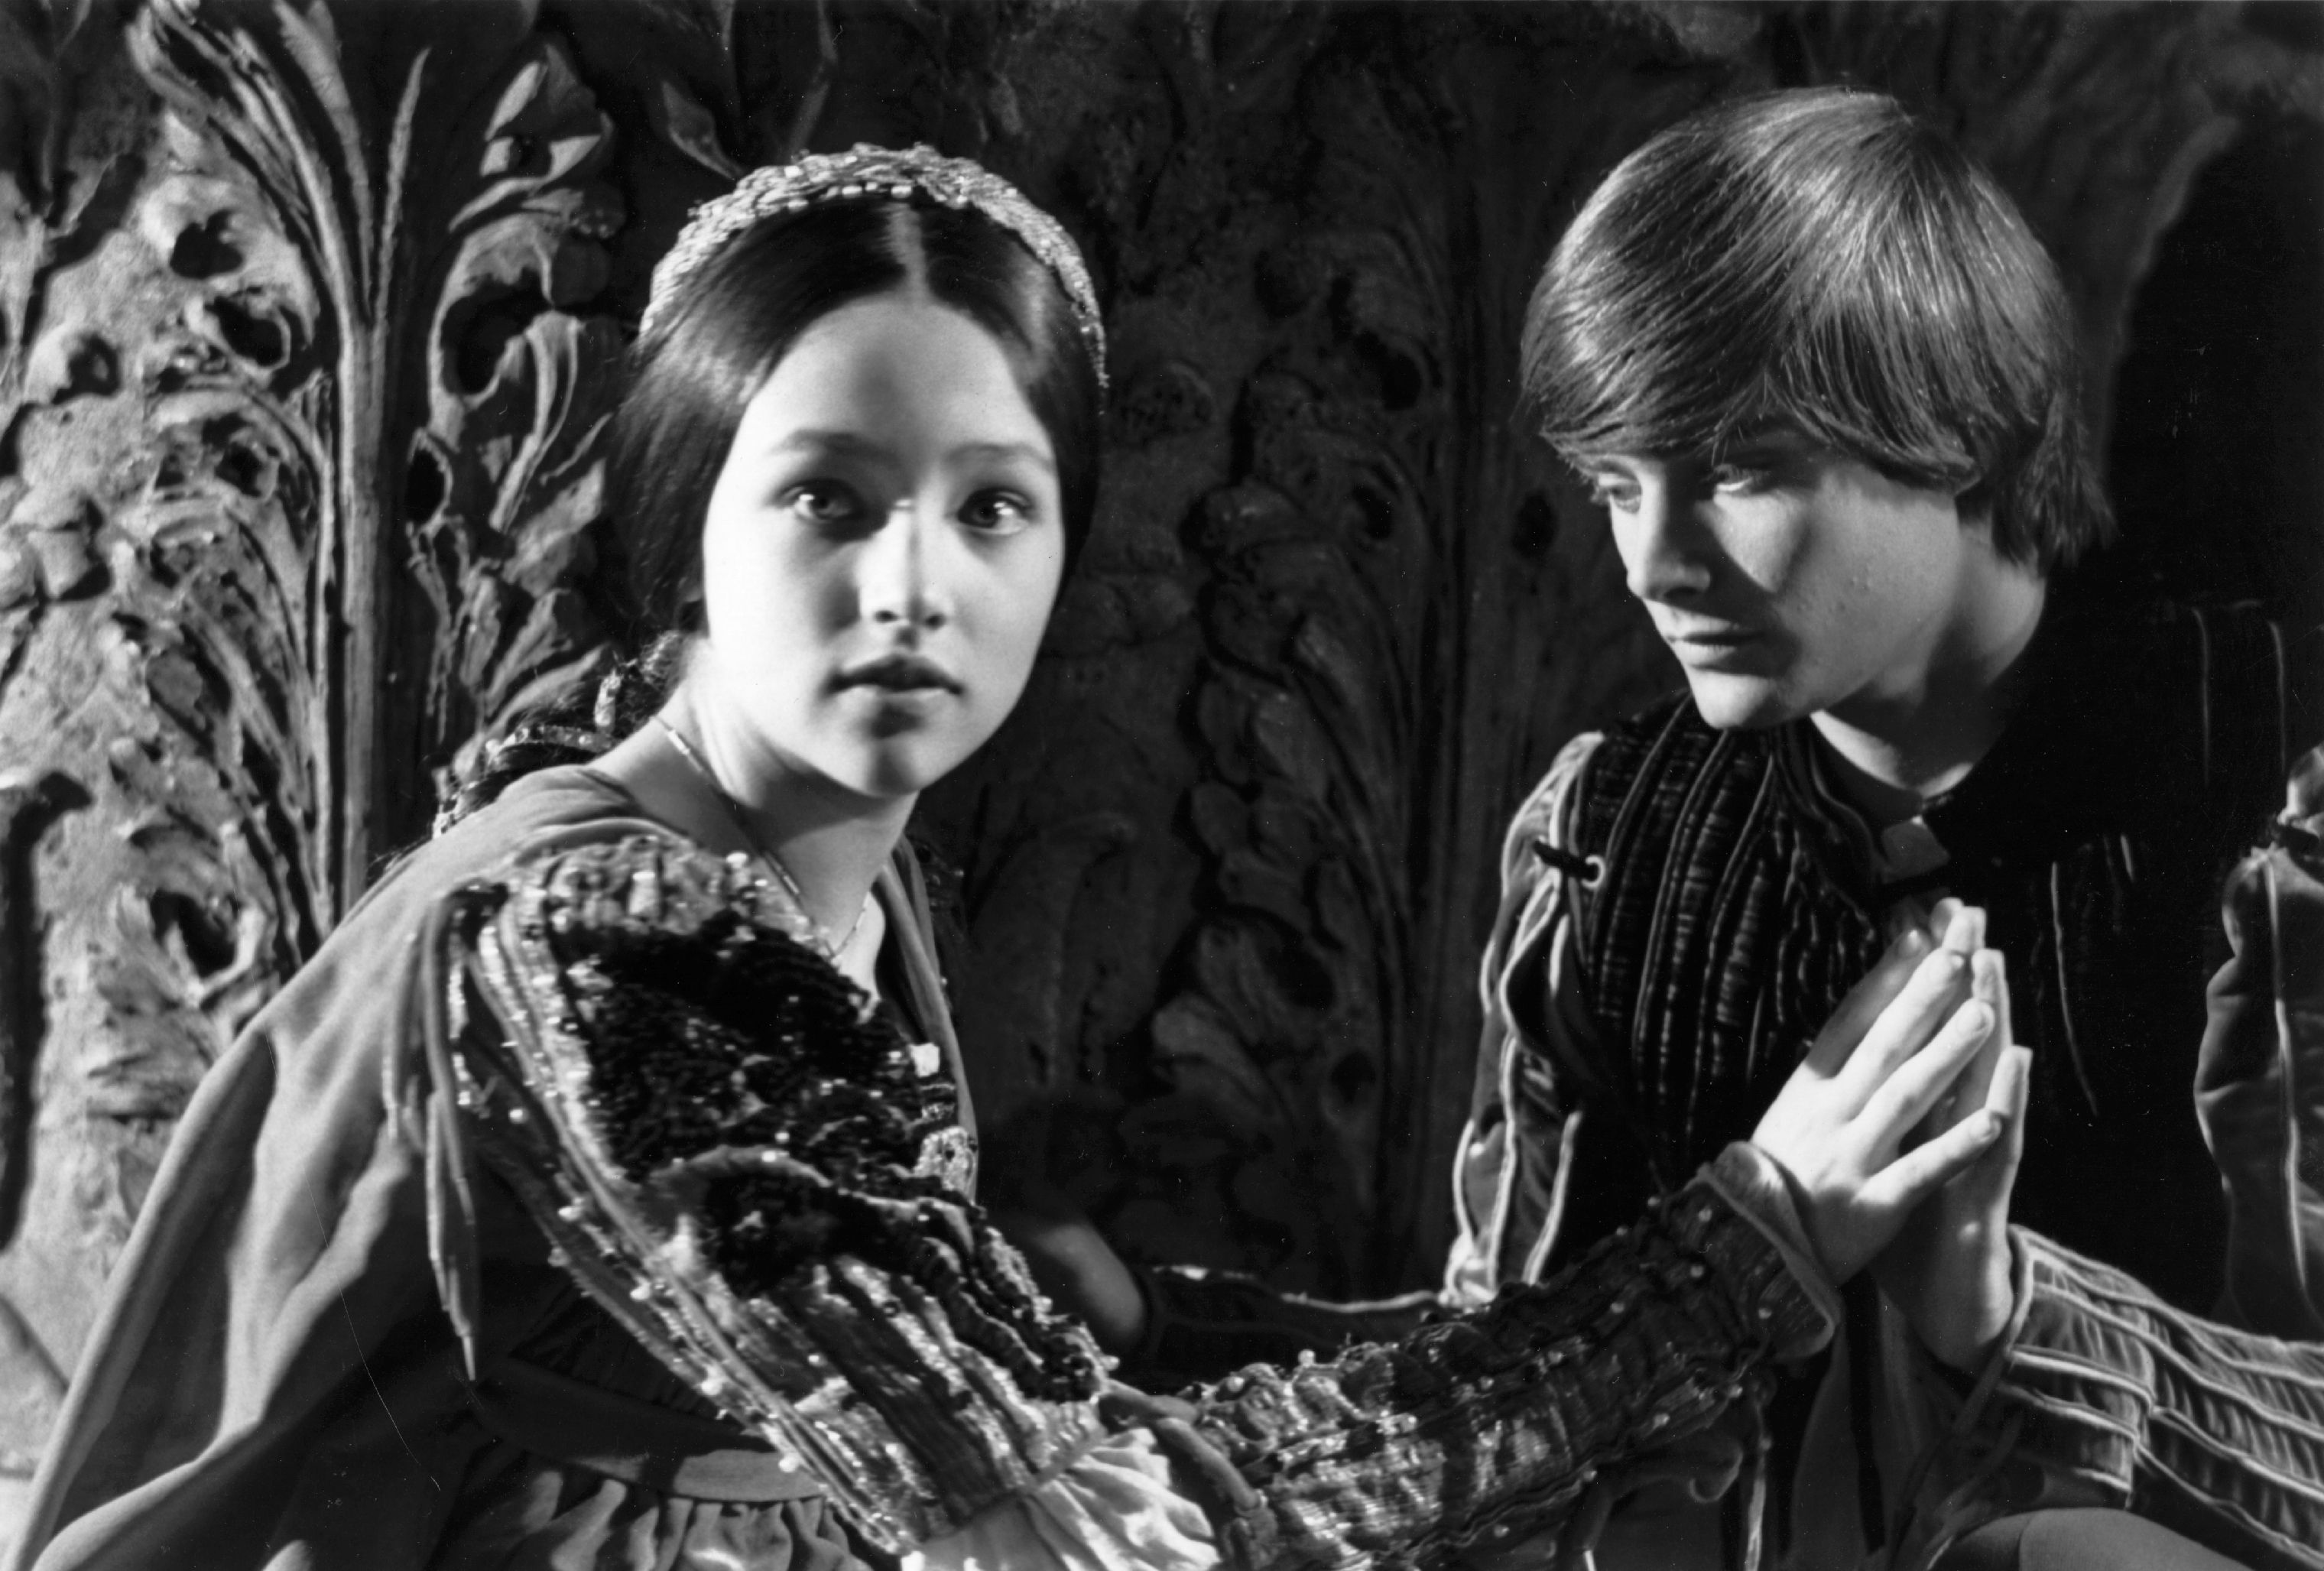 Romeo & Juliet (Credit: Getty Images)